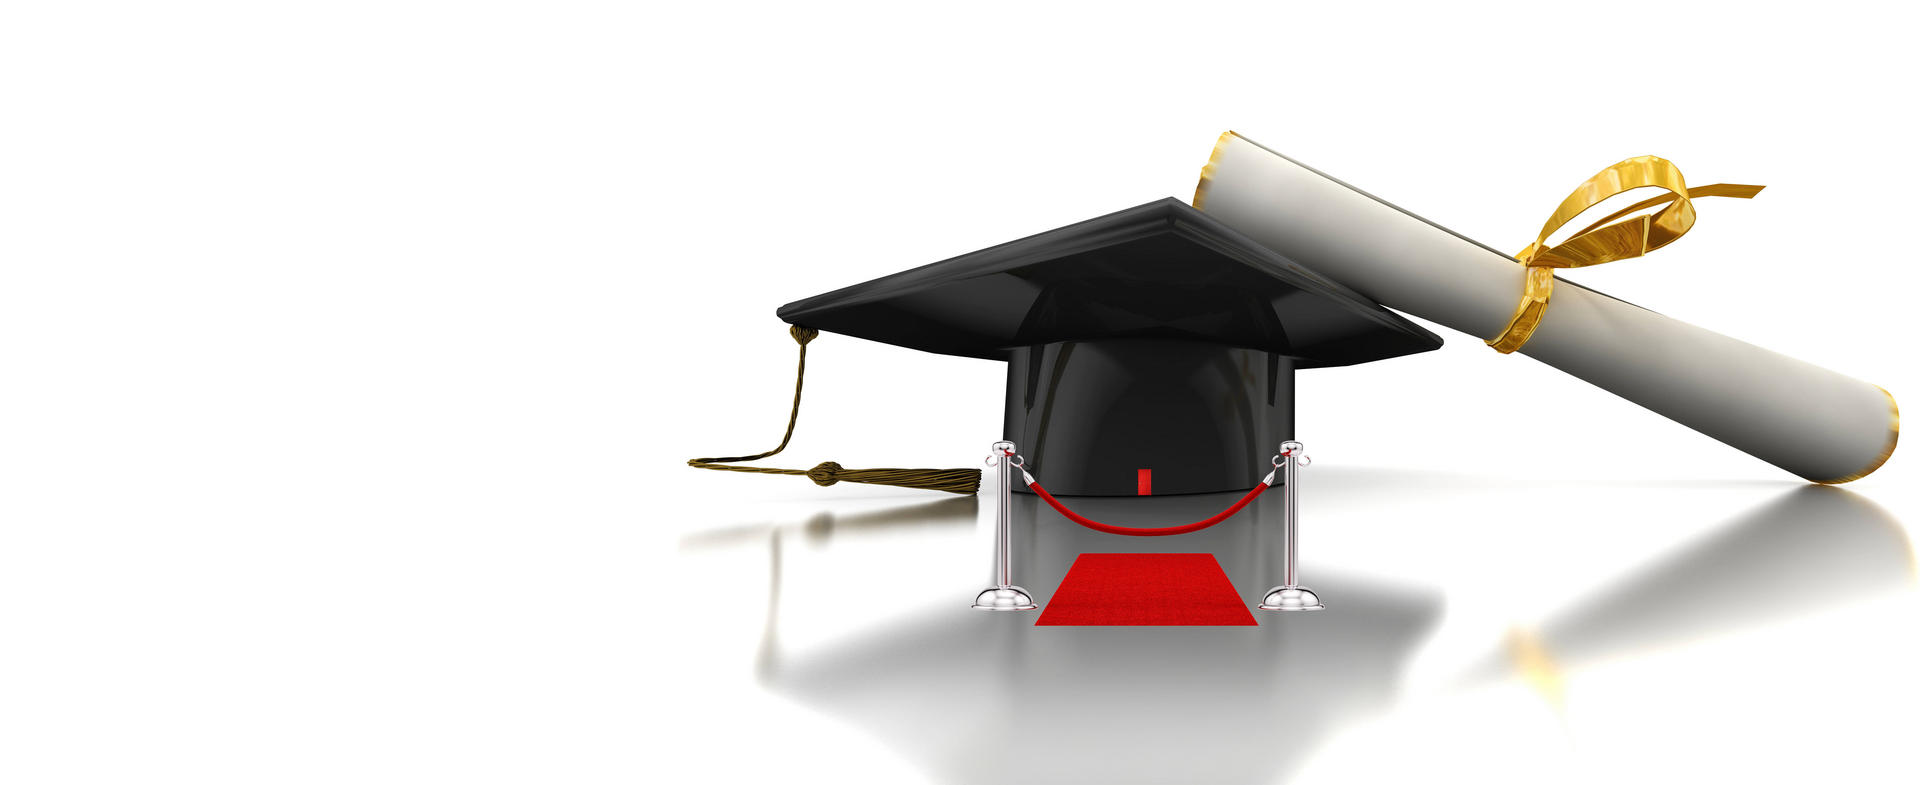 study local universities People searching for universities offering phd found the following resources, articles, links, and information helpful.